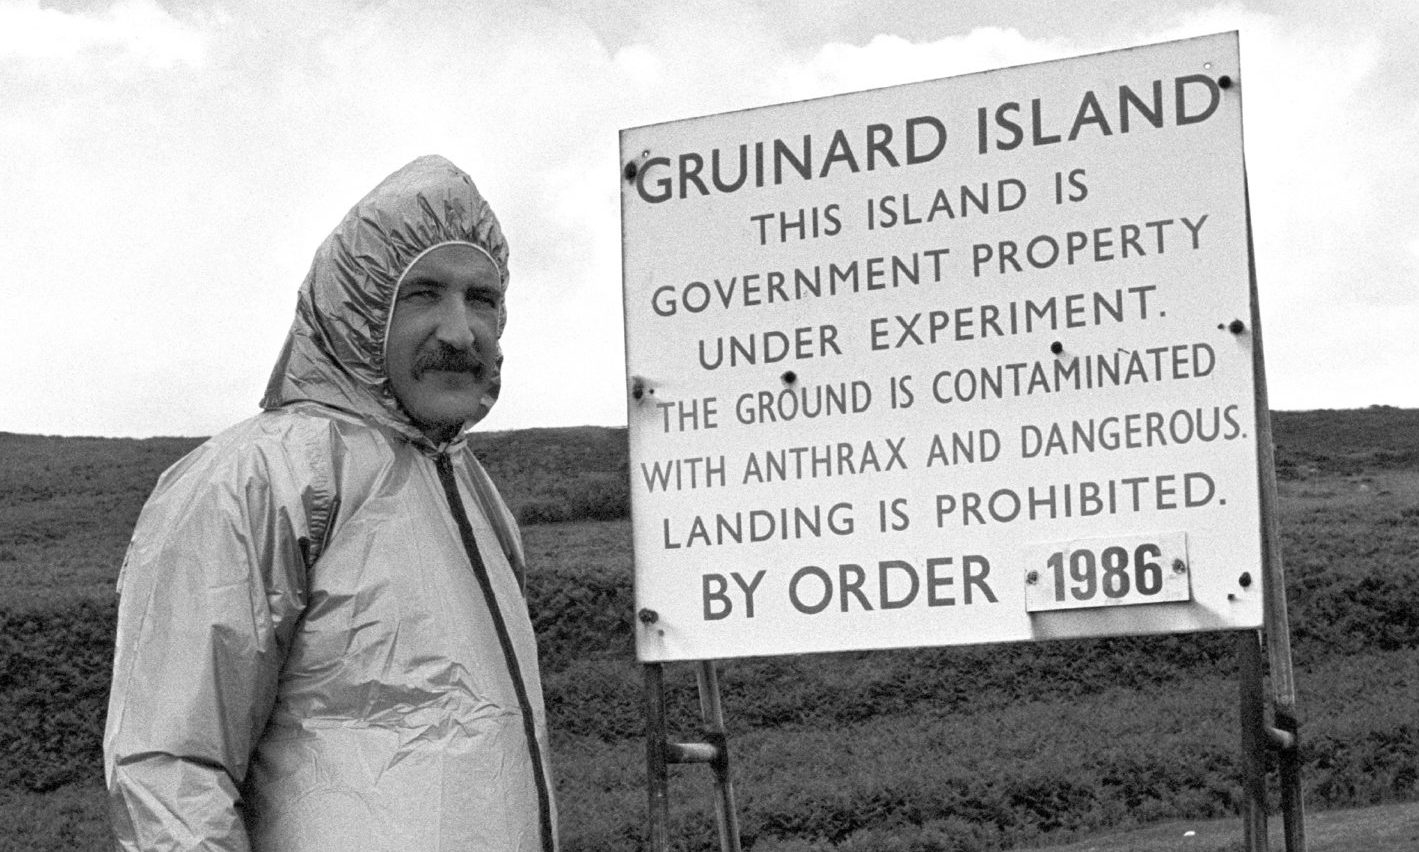 Malcolm Broster of MOD Chemical Defence Establishment at Porton Down, alongside one of the warning signs on the Gruinard Island.